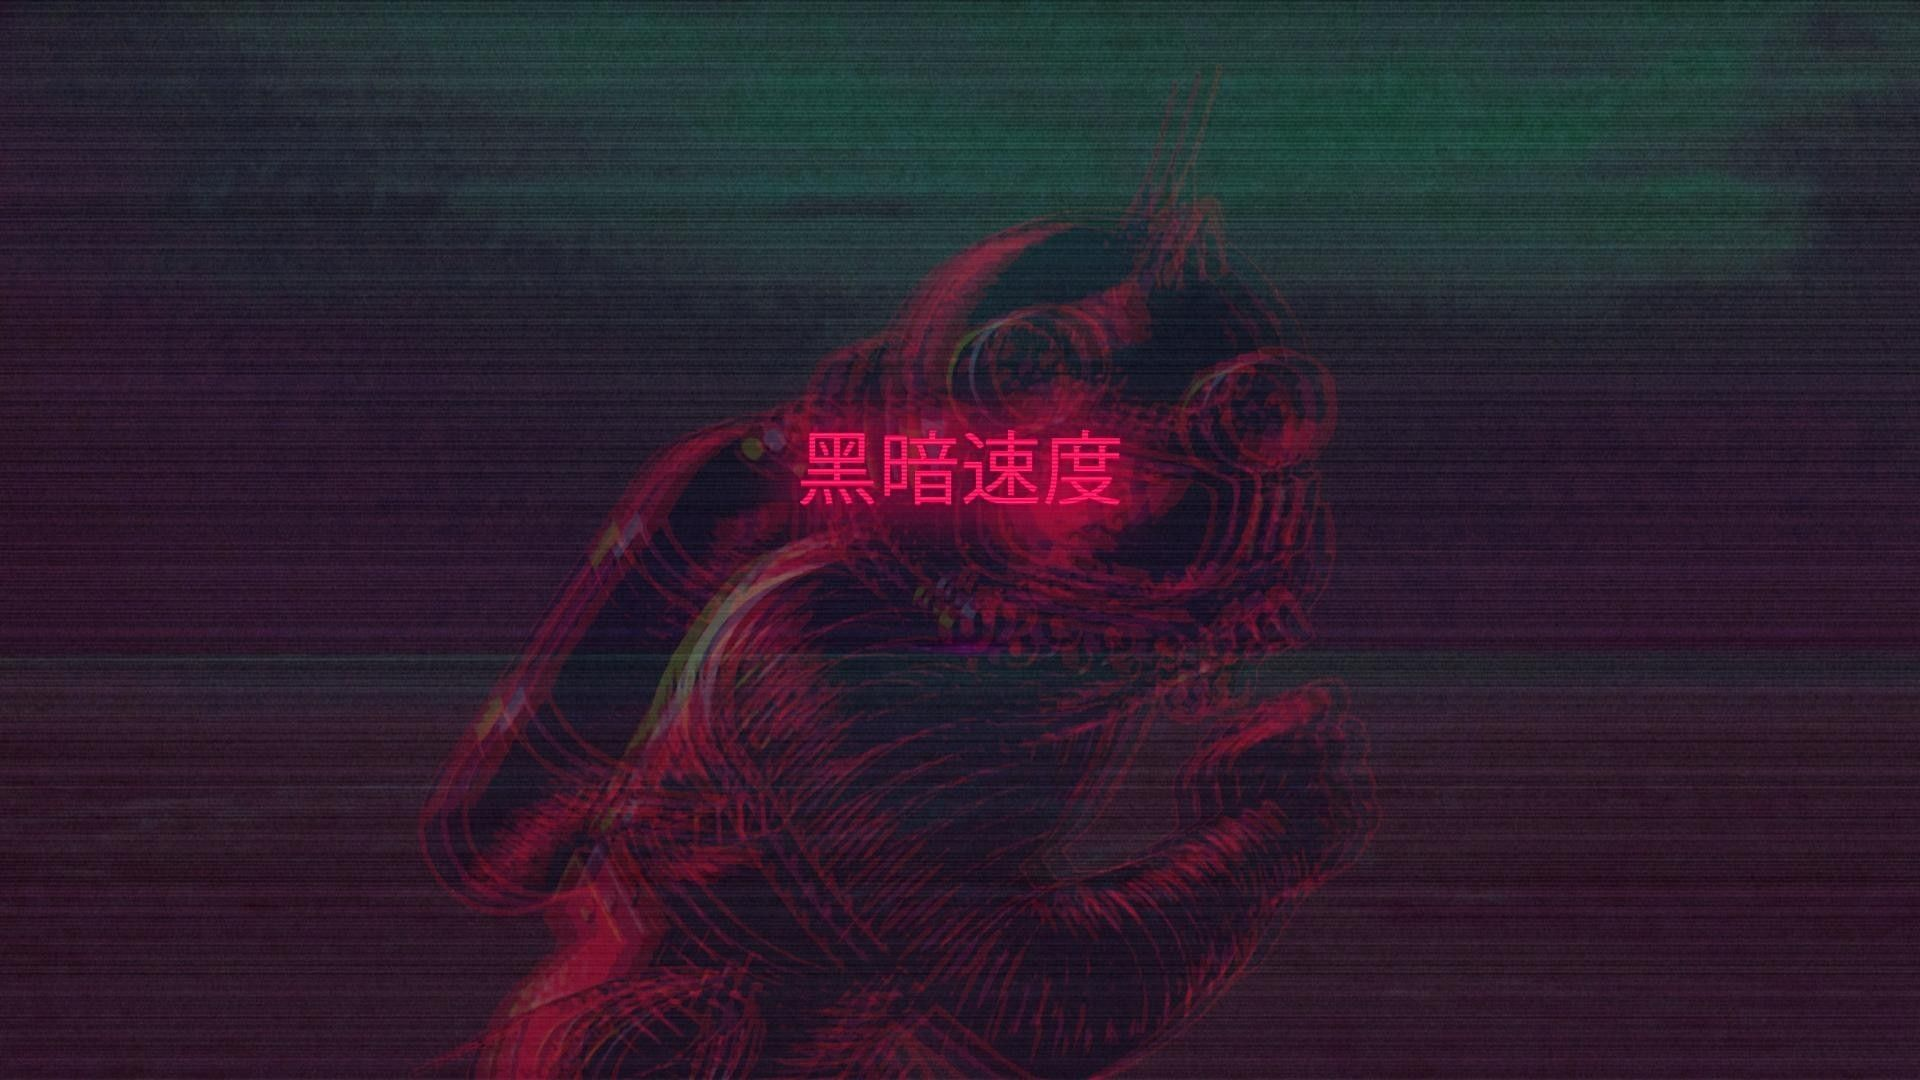 Res 1920x1080 Synthwave And A Little Bit Of Cyberpunk Wallpaper Dump Aesthetic Desktop Wallpaper Vaporwave Wallpaper Black Aesthetic Wallpaper